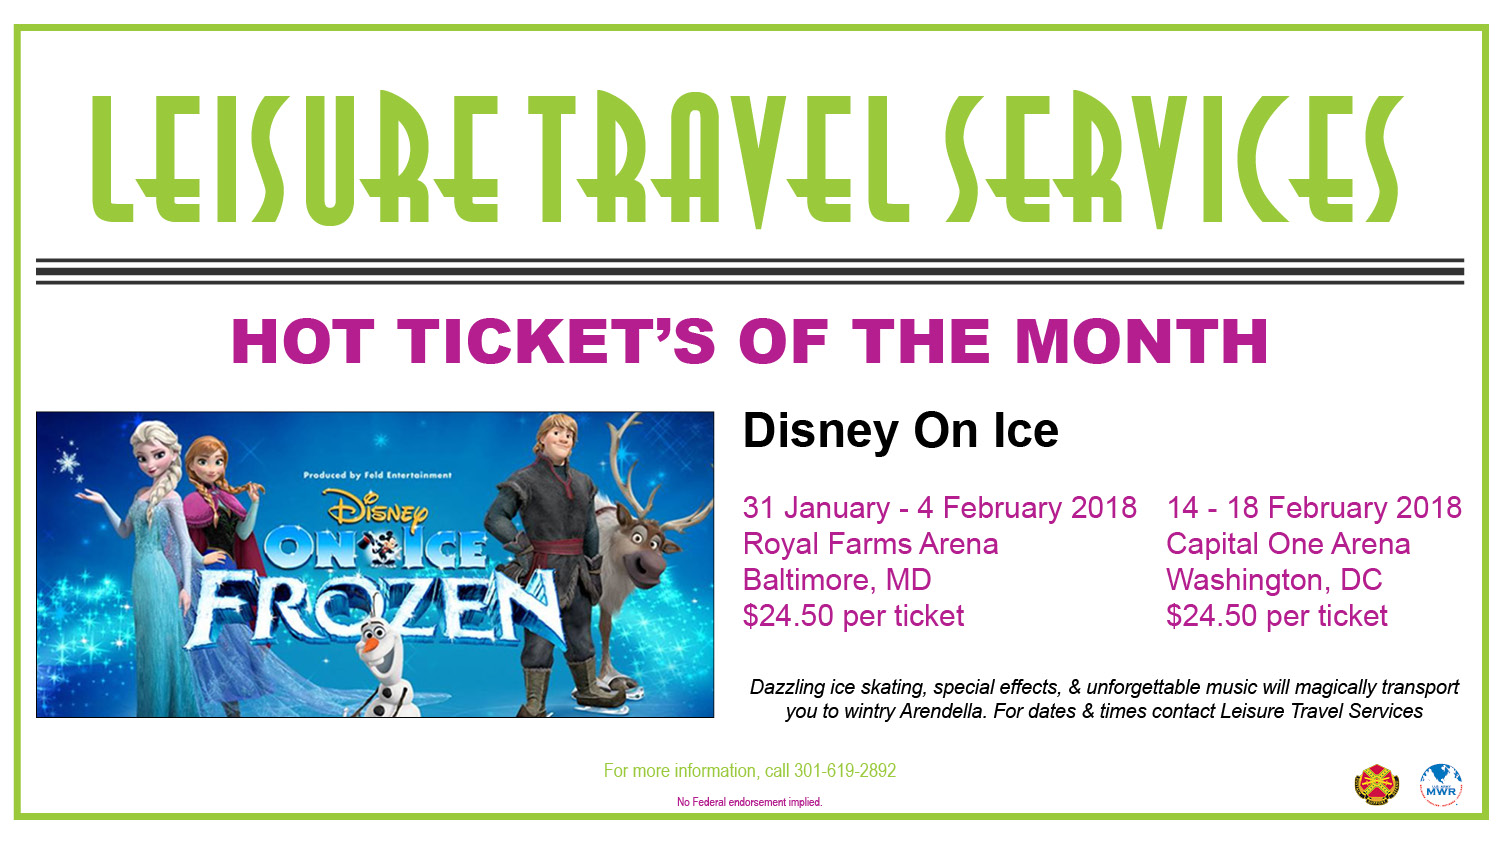 HOT TICKET'S OF THE MONTH